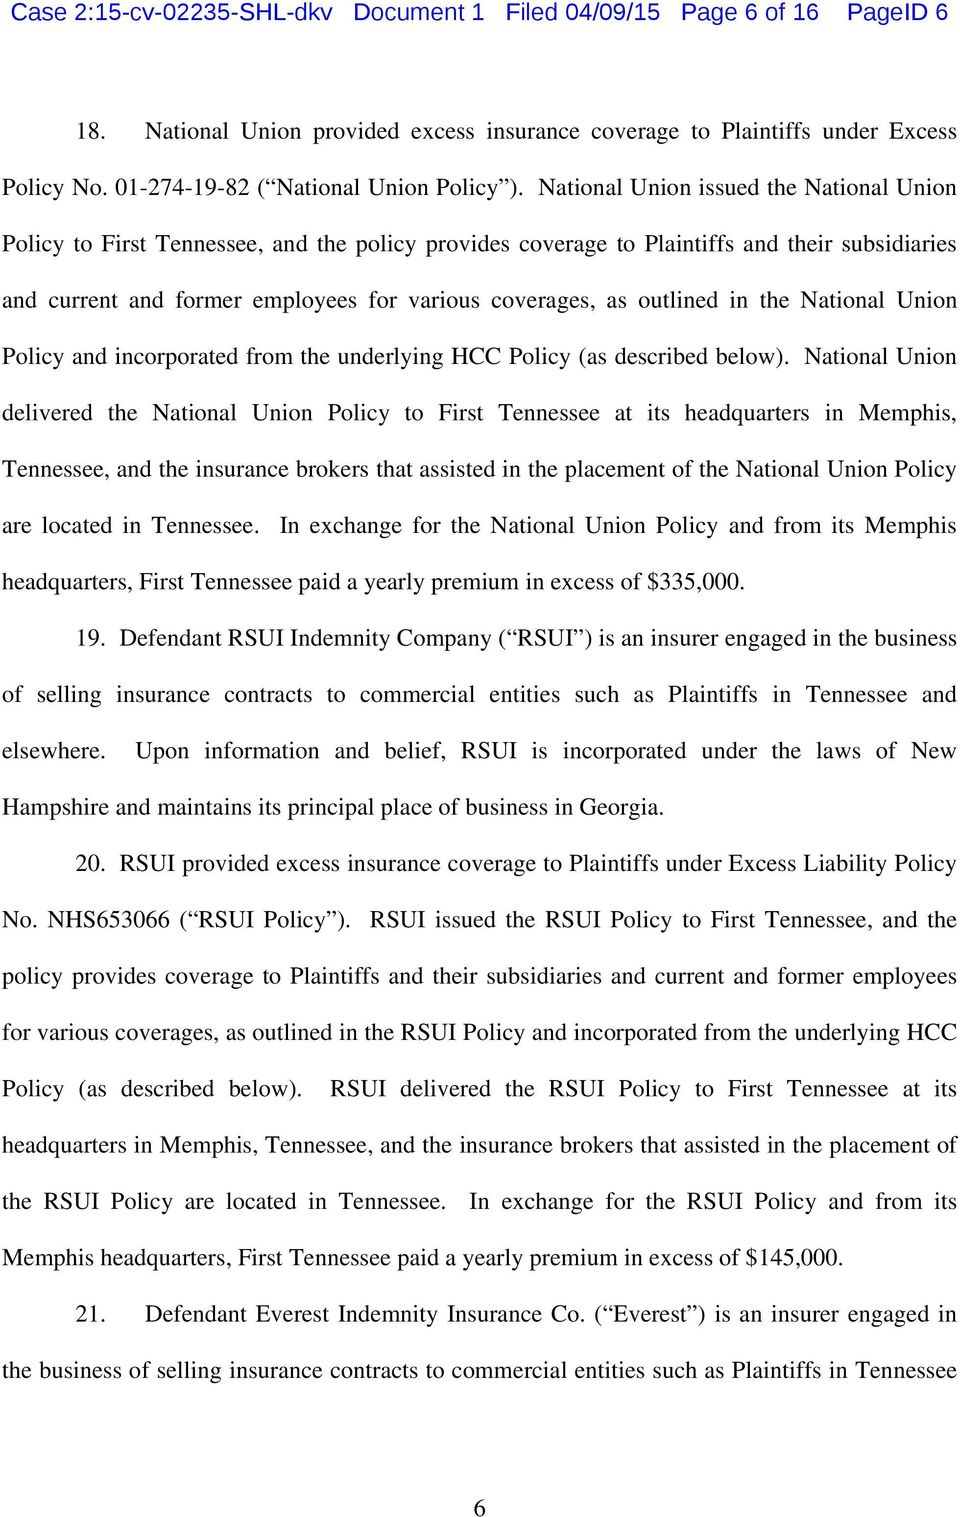 National Union issued the National Union Policy to First Tennessee, and the policy provides coverage to Plaintiffs and their subsidiaries and current and former employees for various coverages, as